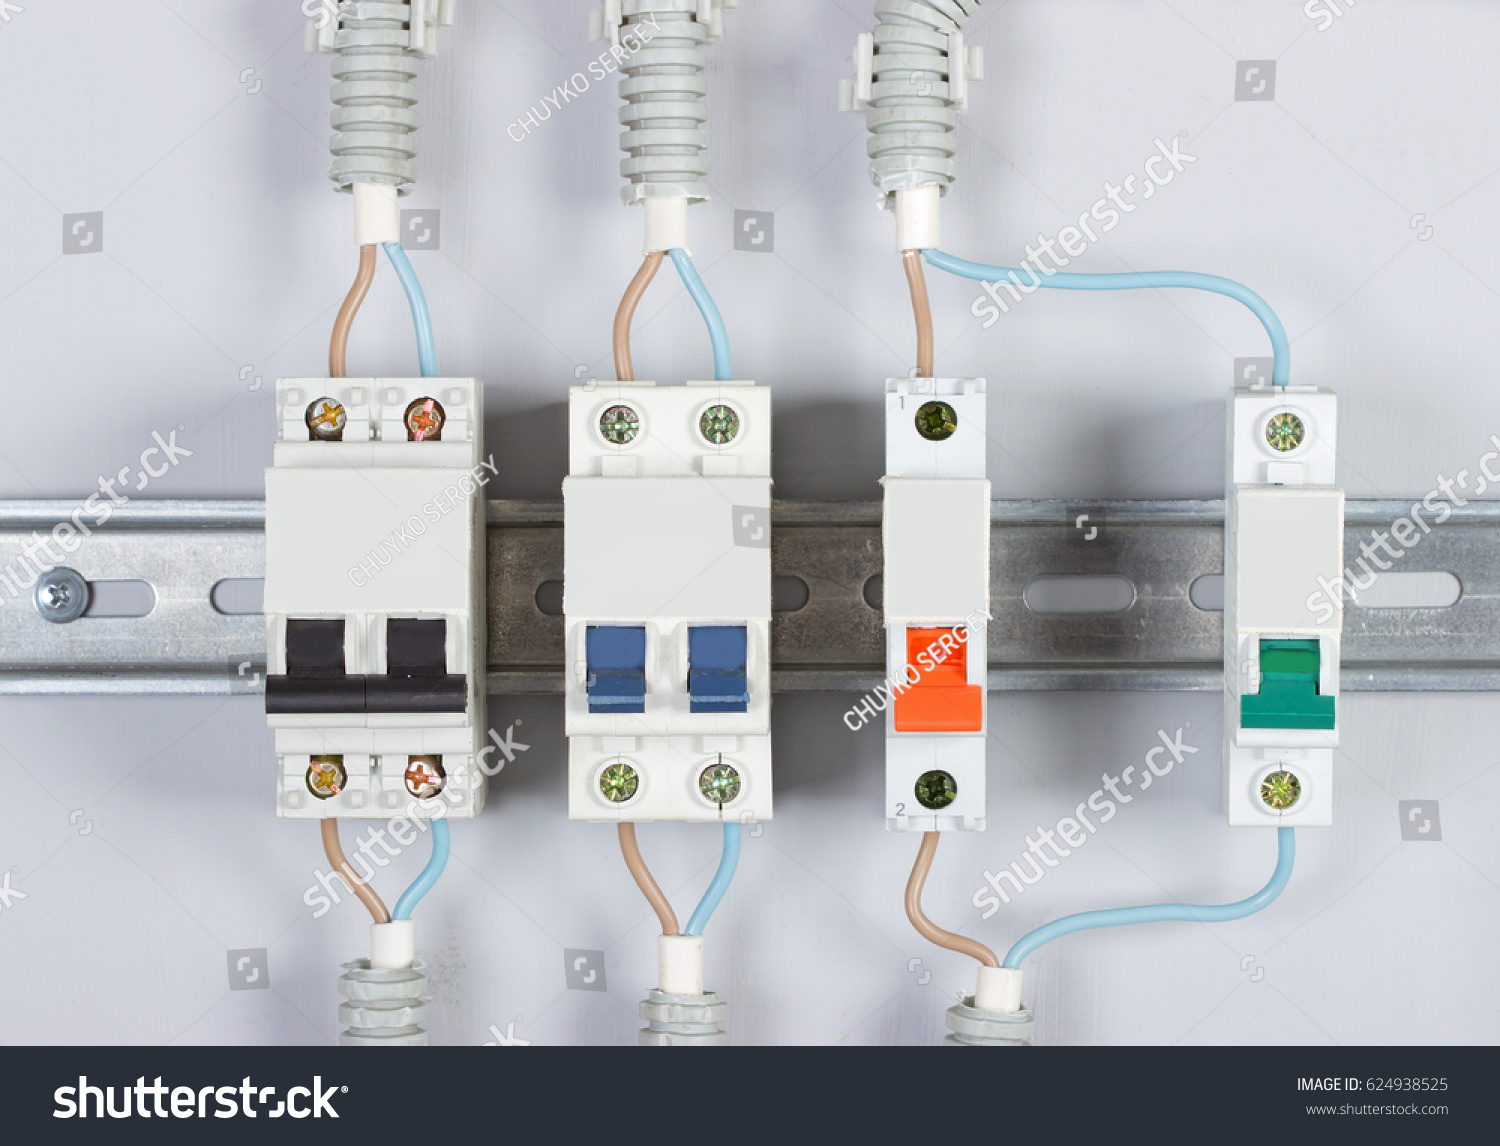 hight resolution of electricity distribution box fuse box wires